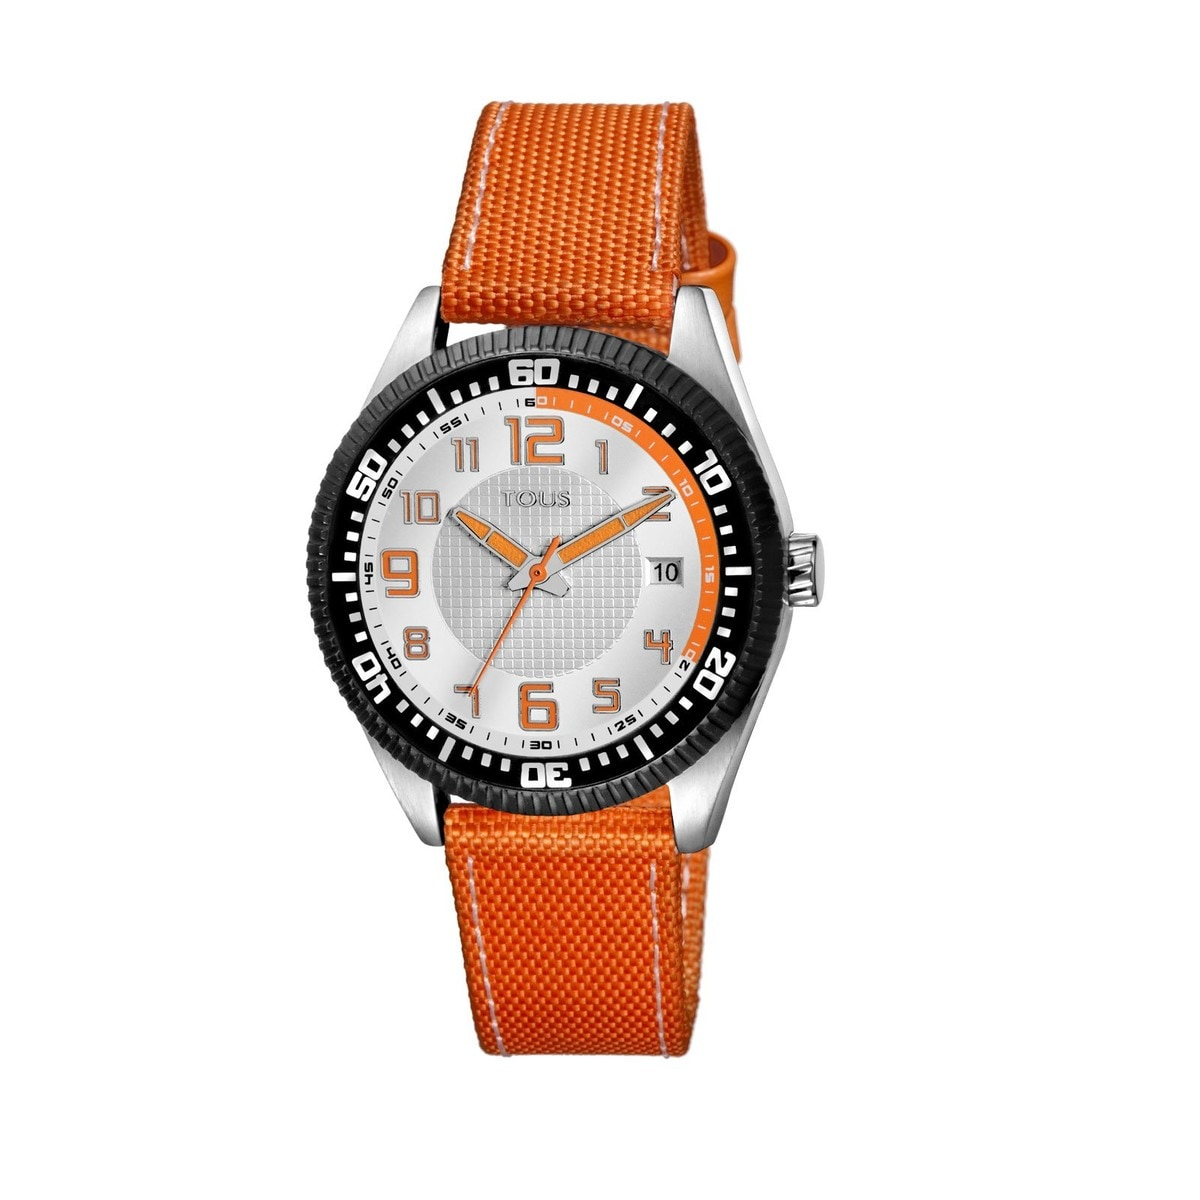 Steel Scuba Watch with orange Nylon strap